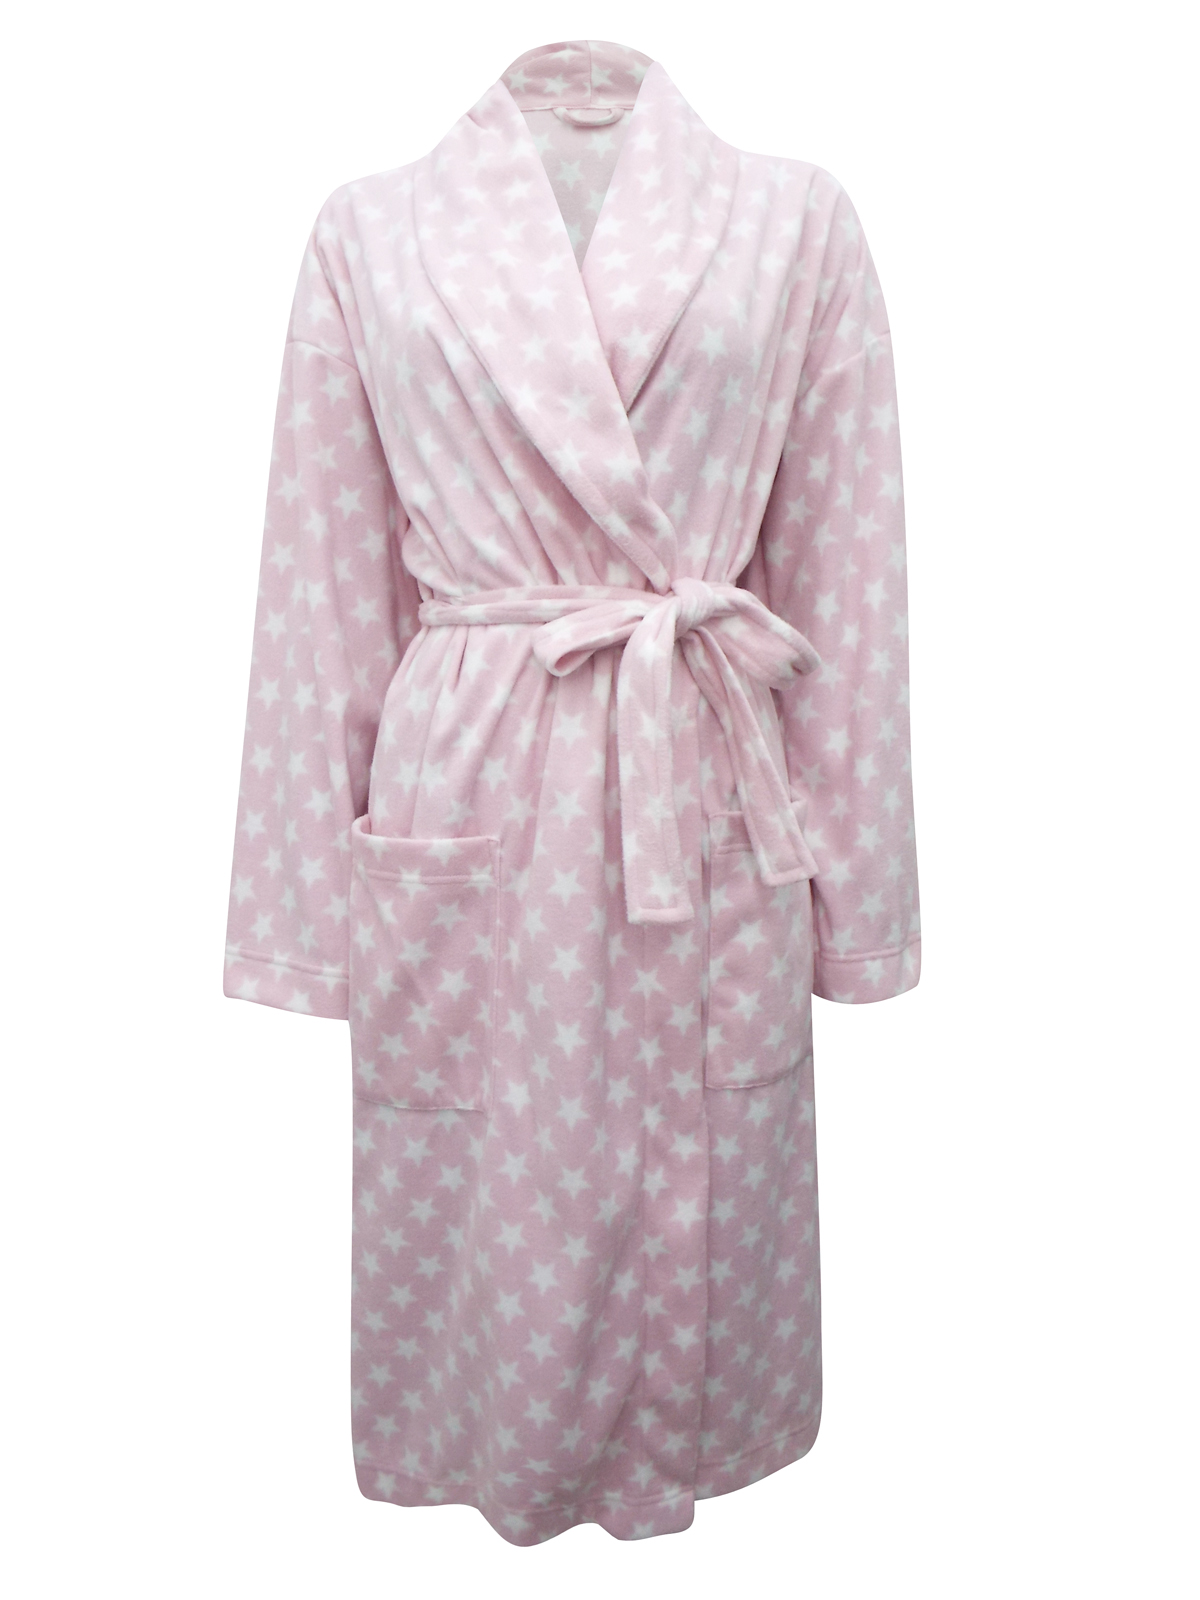 Marks and Spencer - - M&5 PINK Star Print Fleece Wrap Dressing Gown ...